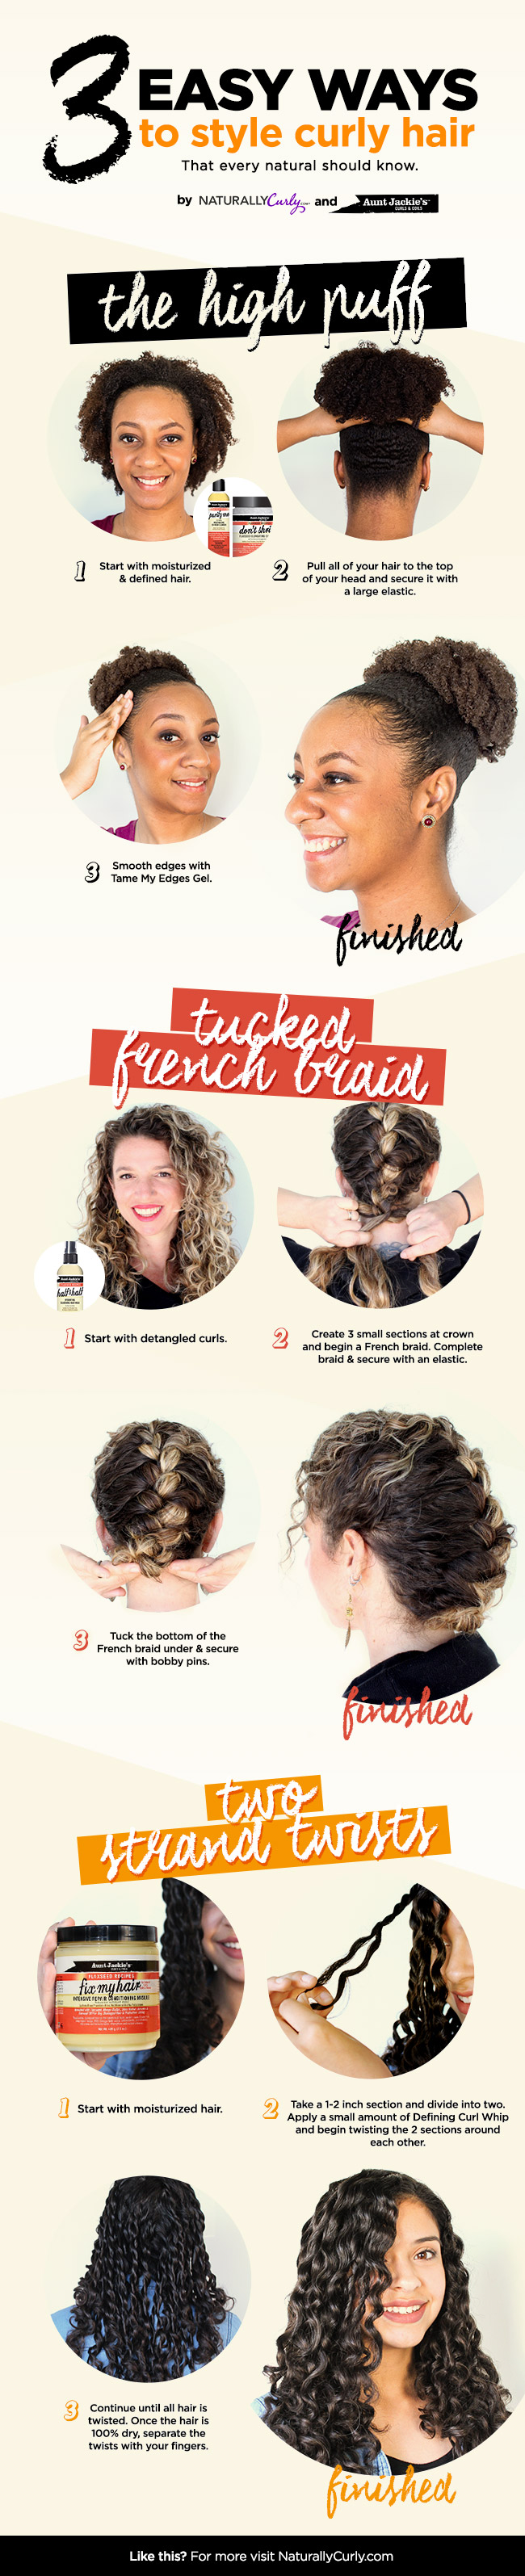 You know these right hairstyles for curlies to try